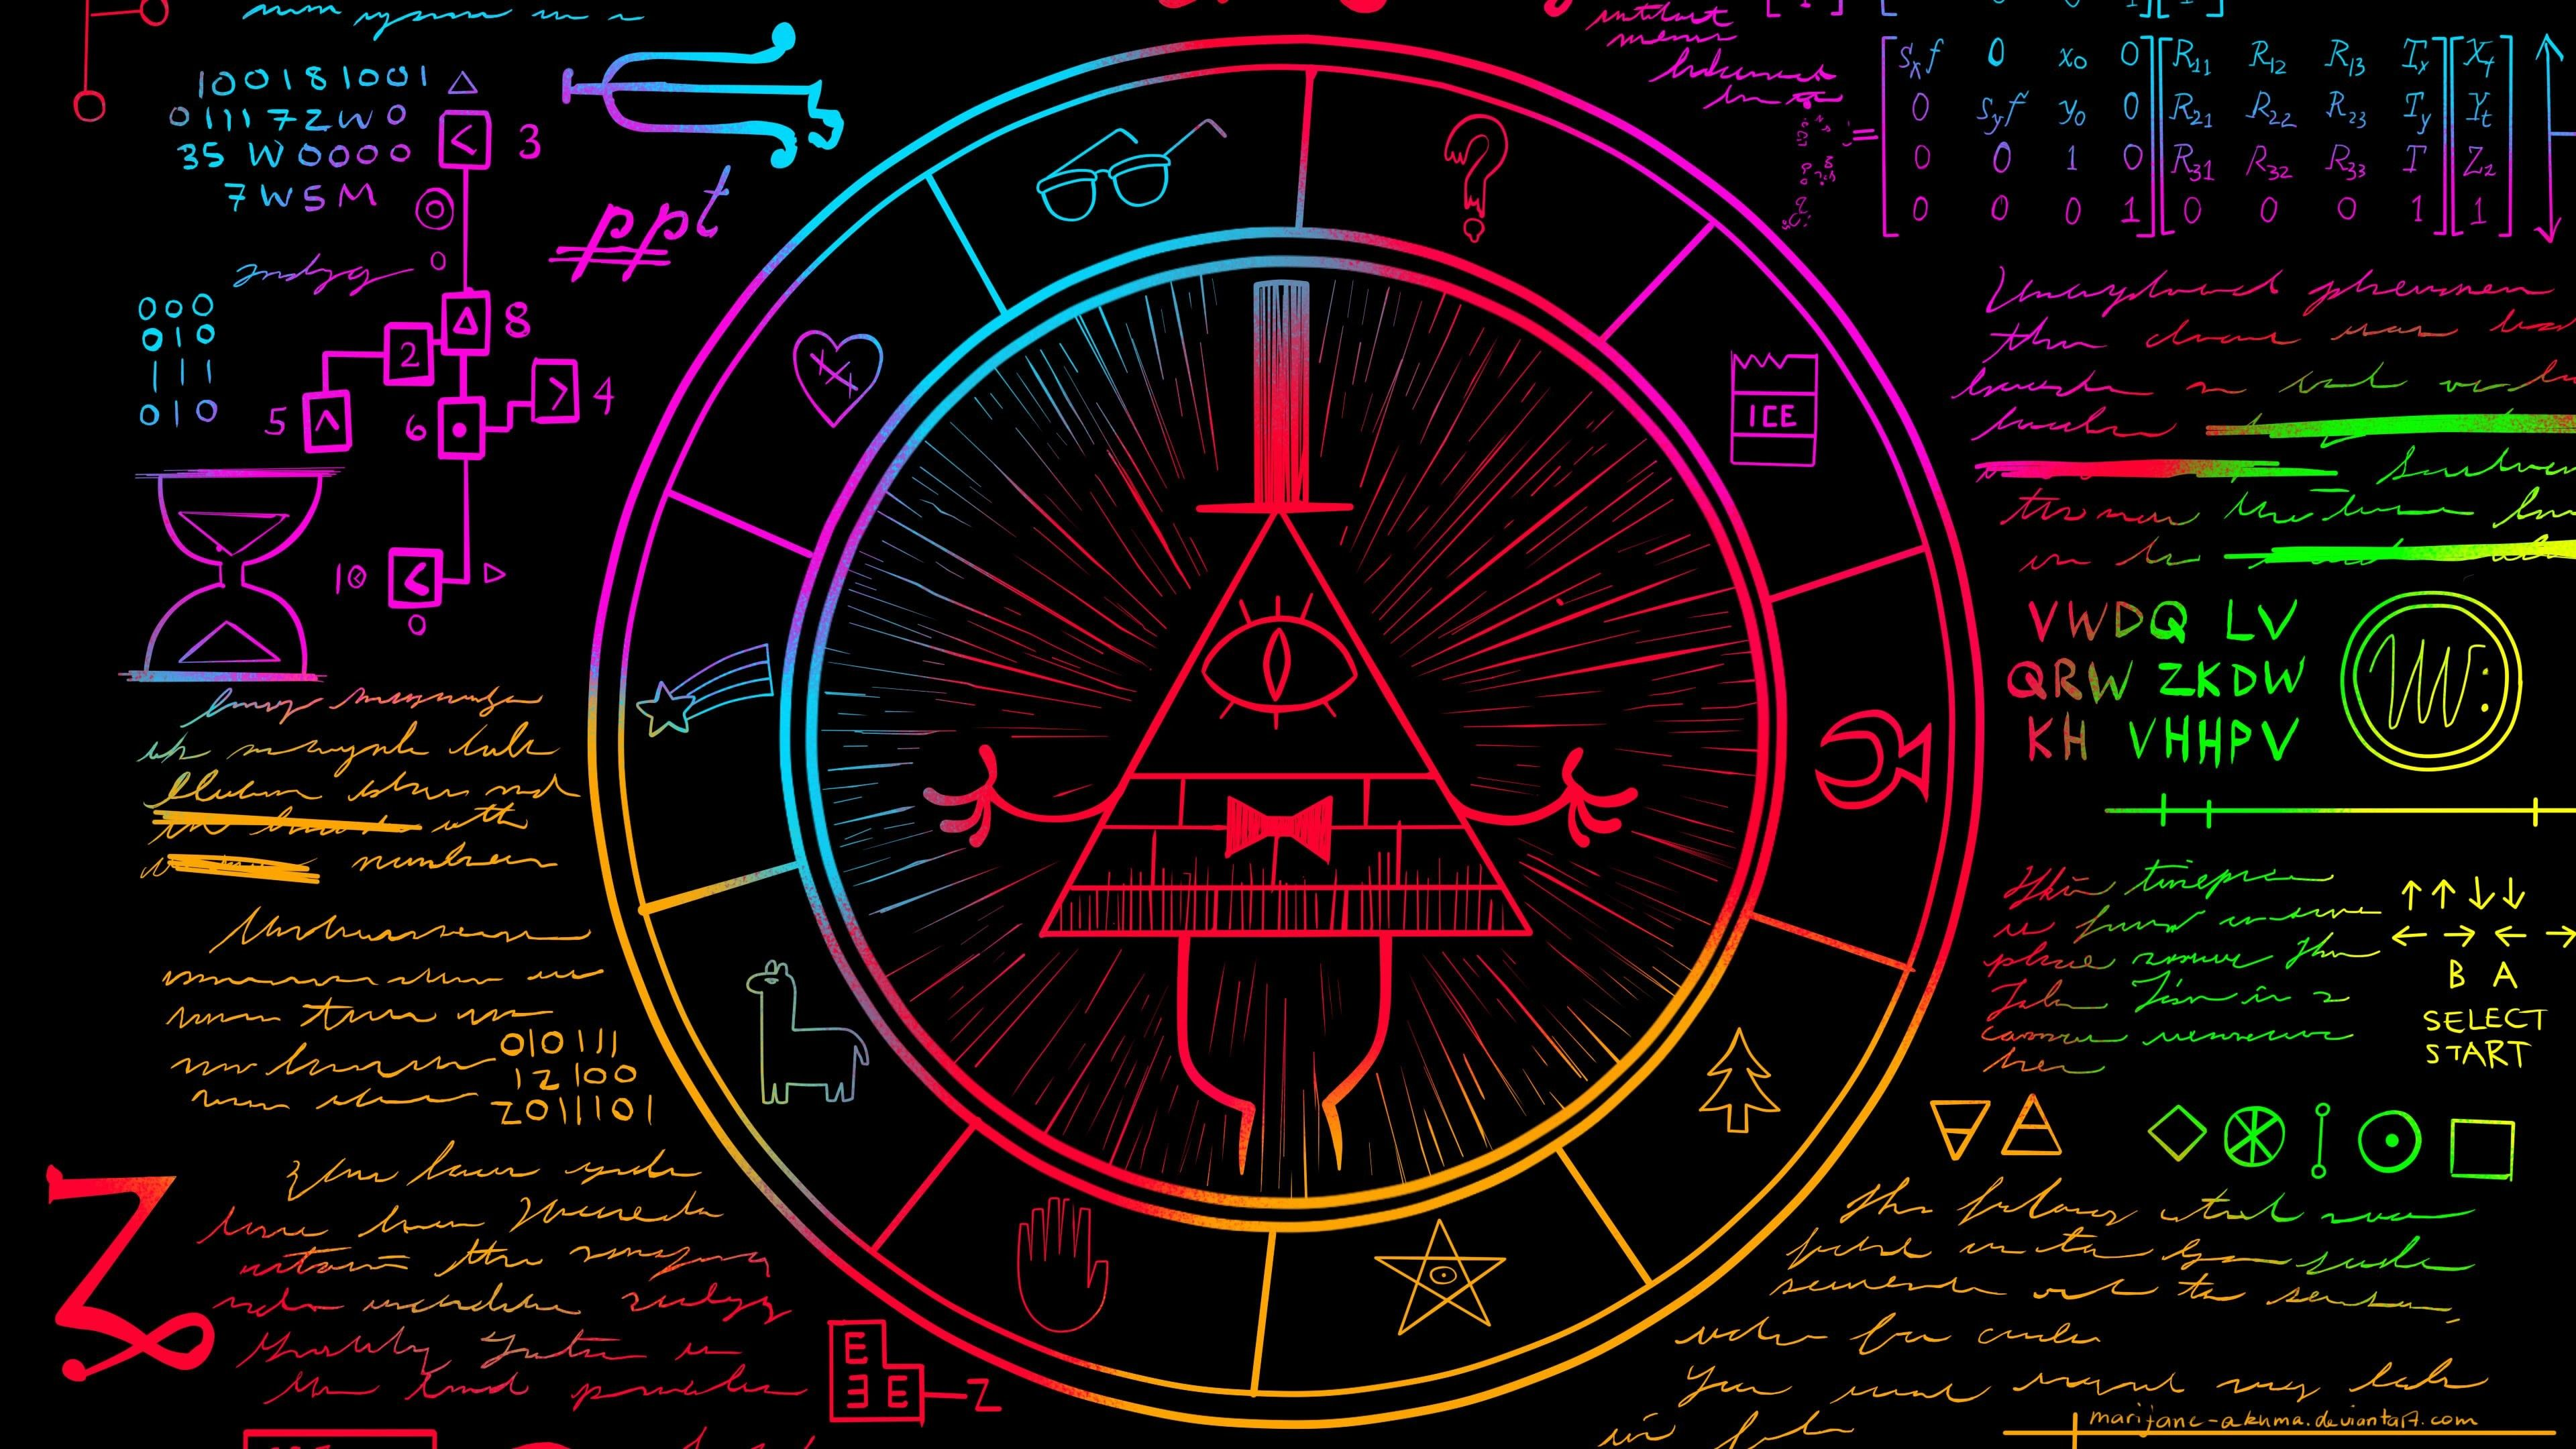 3840x2160 Weirdmageddon Part One Gravity Falls Bill Ciphers 3840x2160